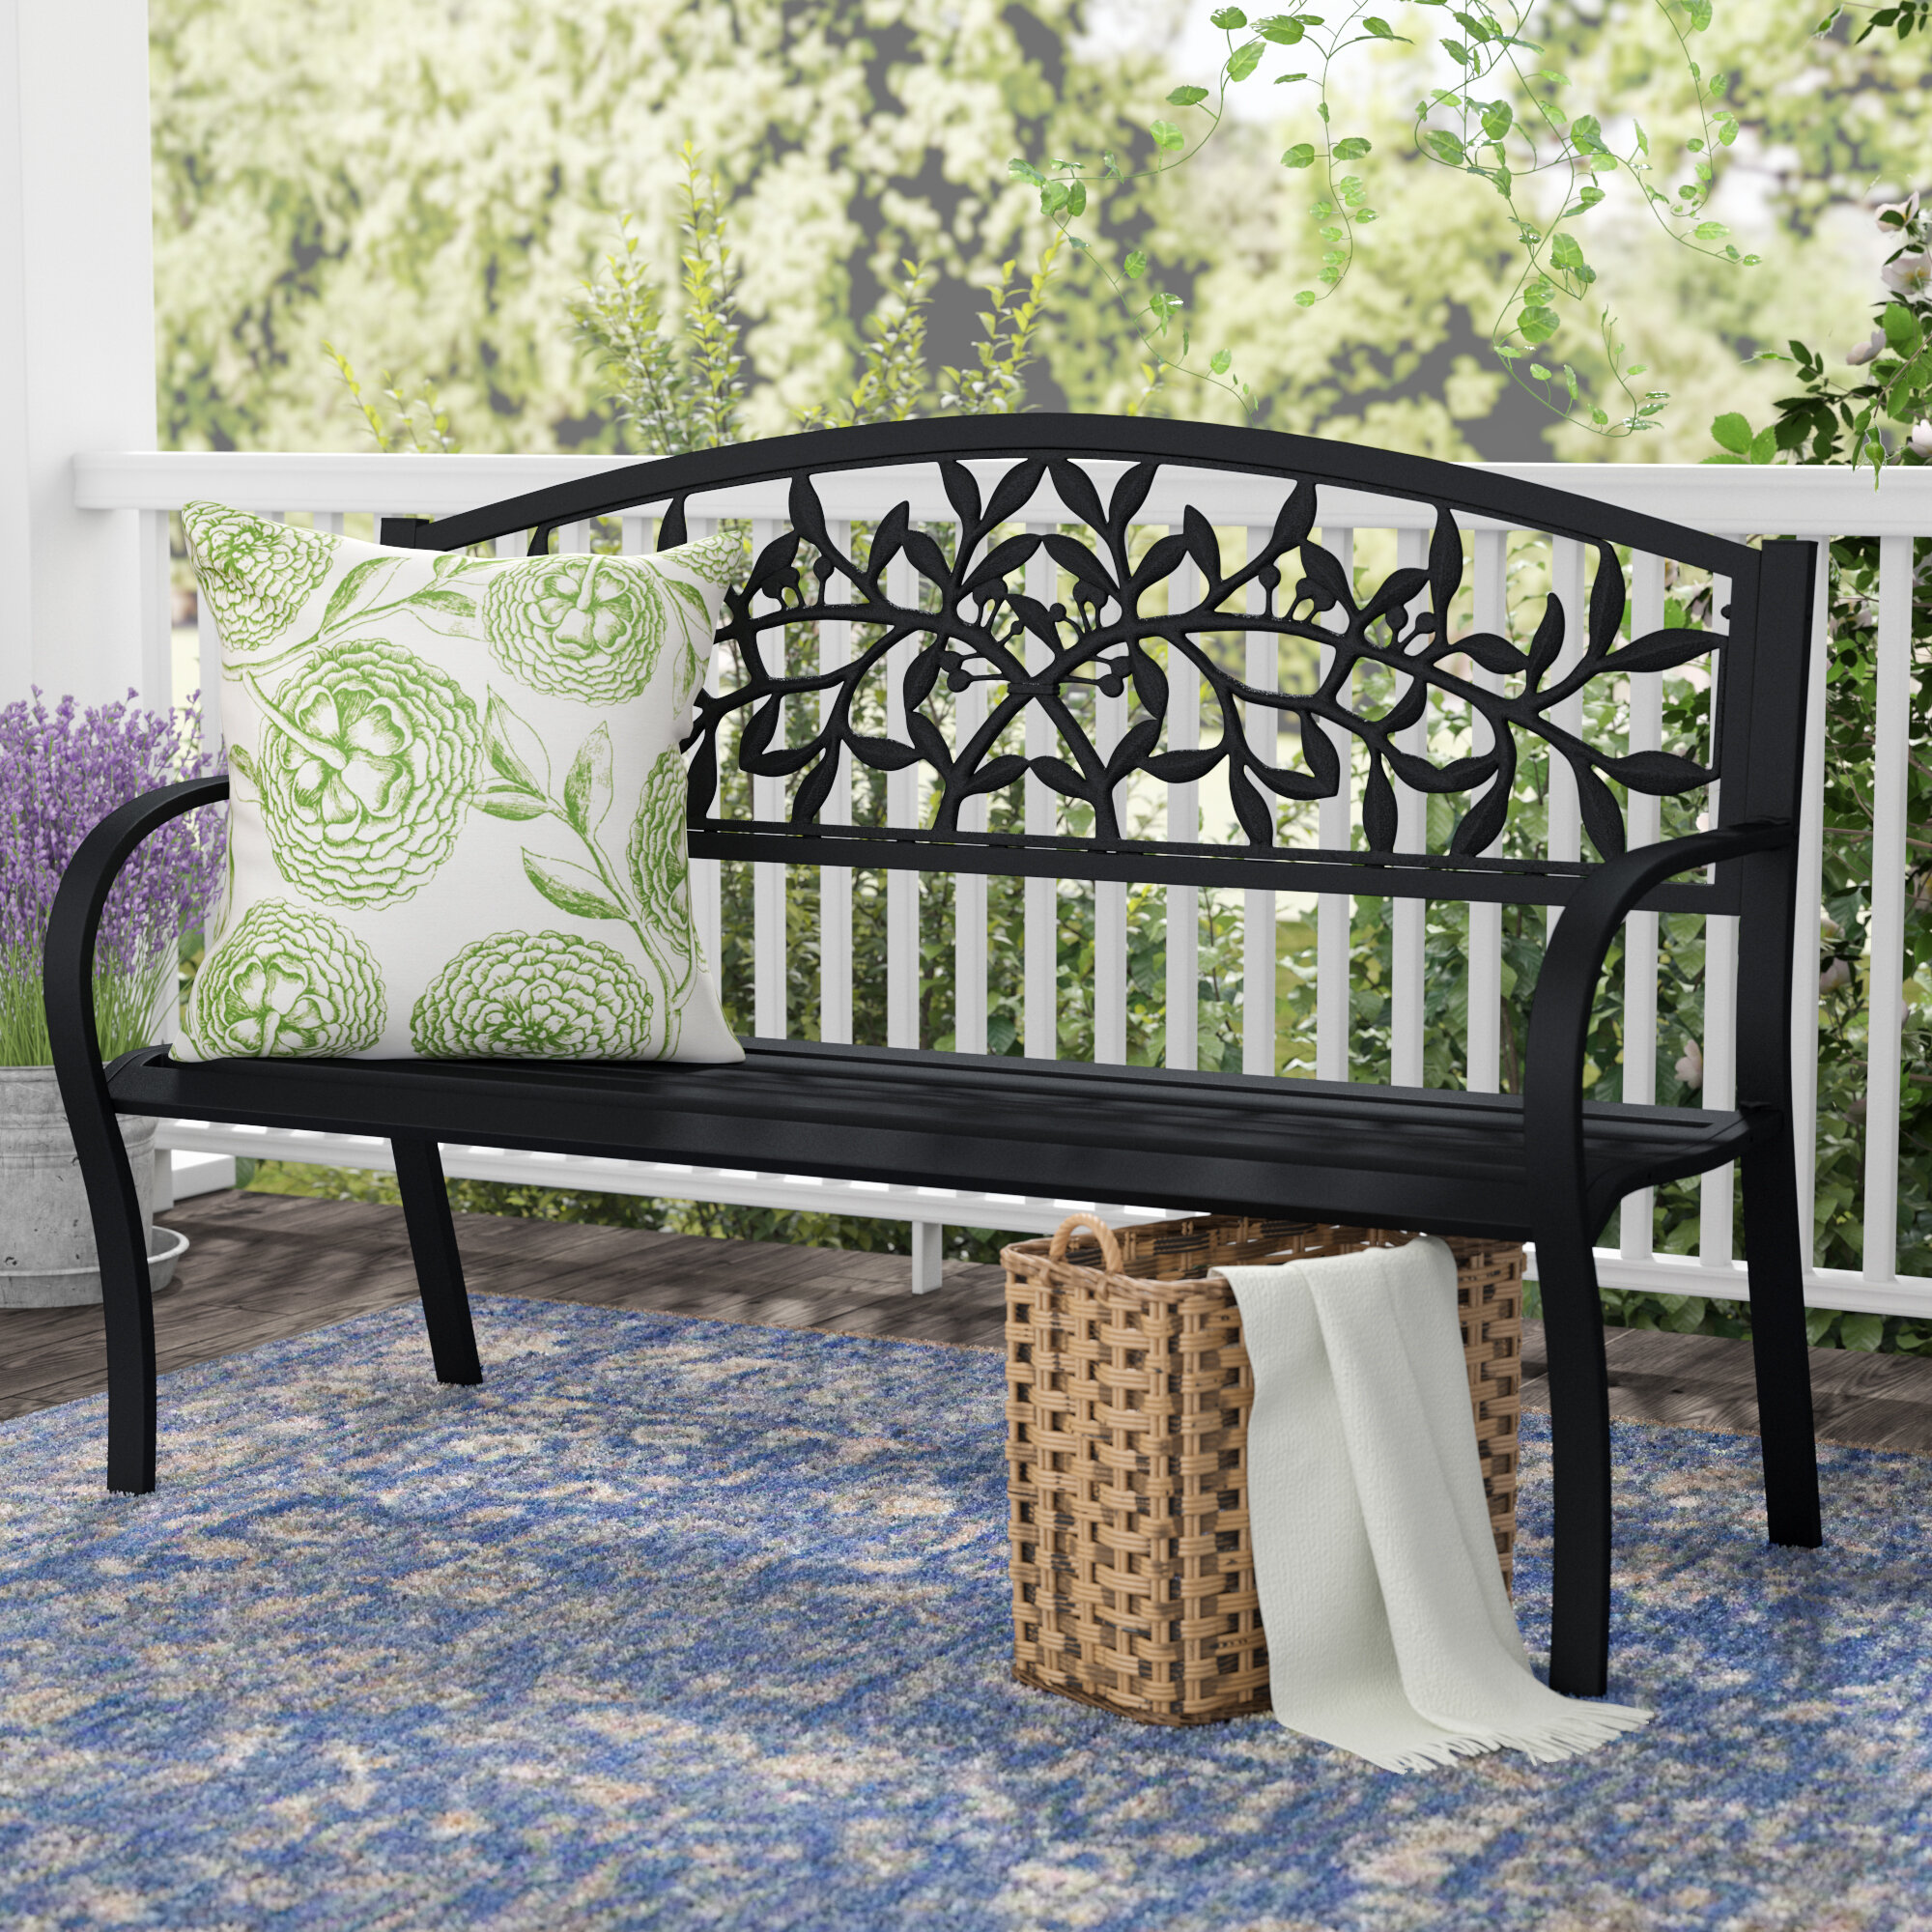 outdoor gardens backless homes garden cushions best delahey bench better photos devotee metal interior home seat and